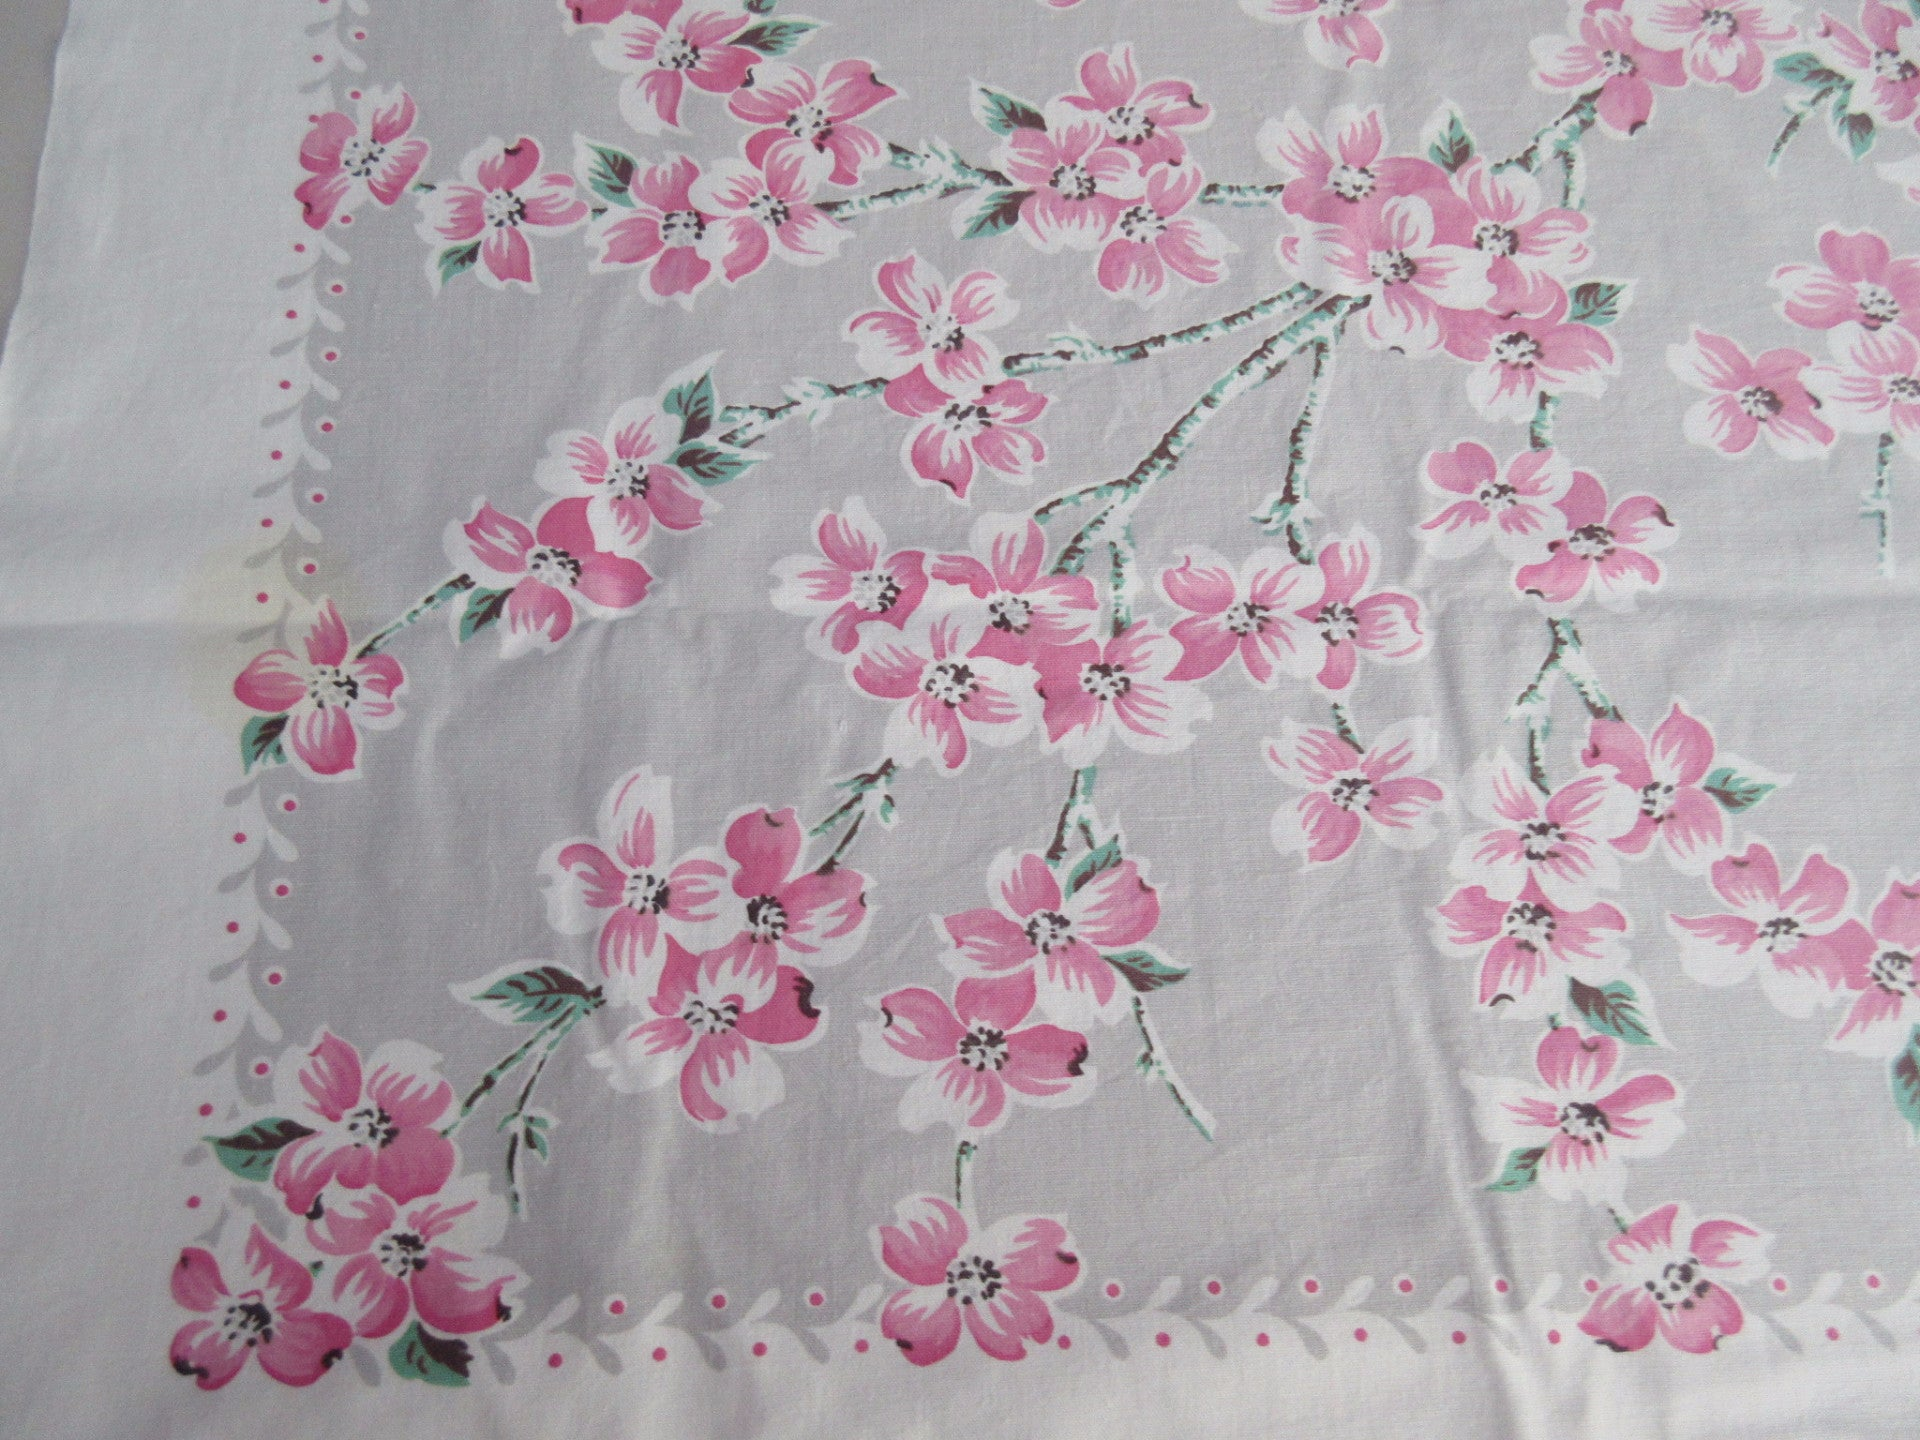 Pink Dogwood Branches on Gray Floral Cutter? Vintage Printed Tablecloth (49 X 46)